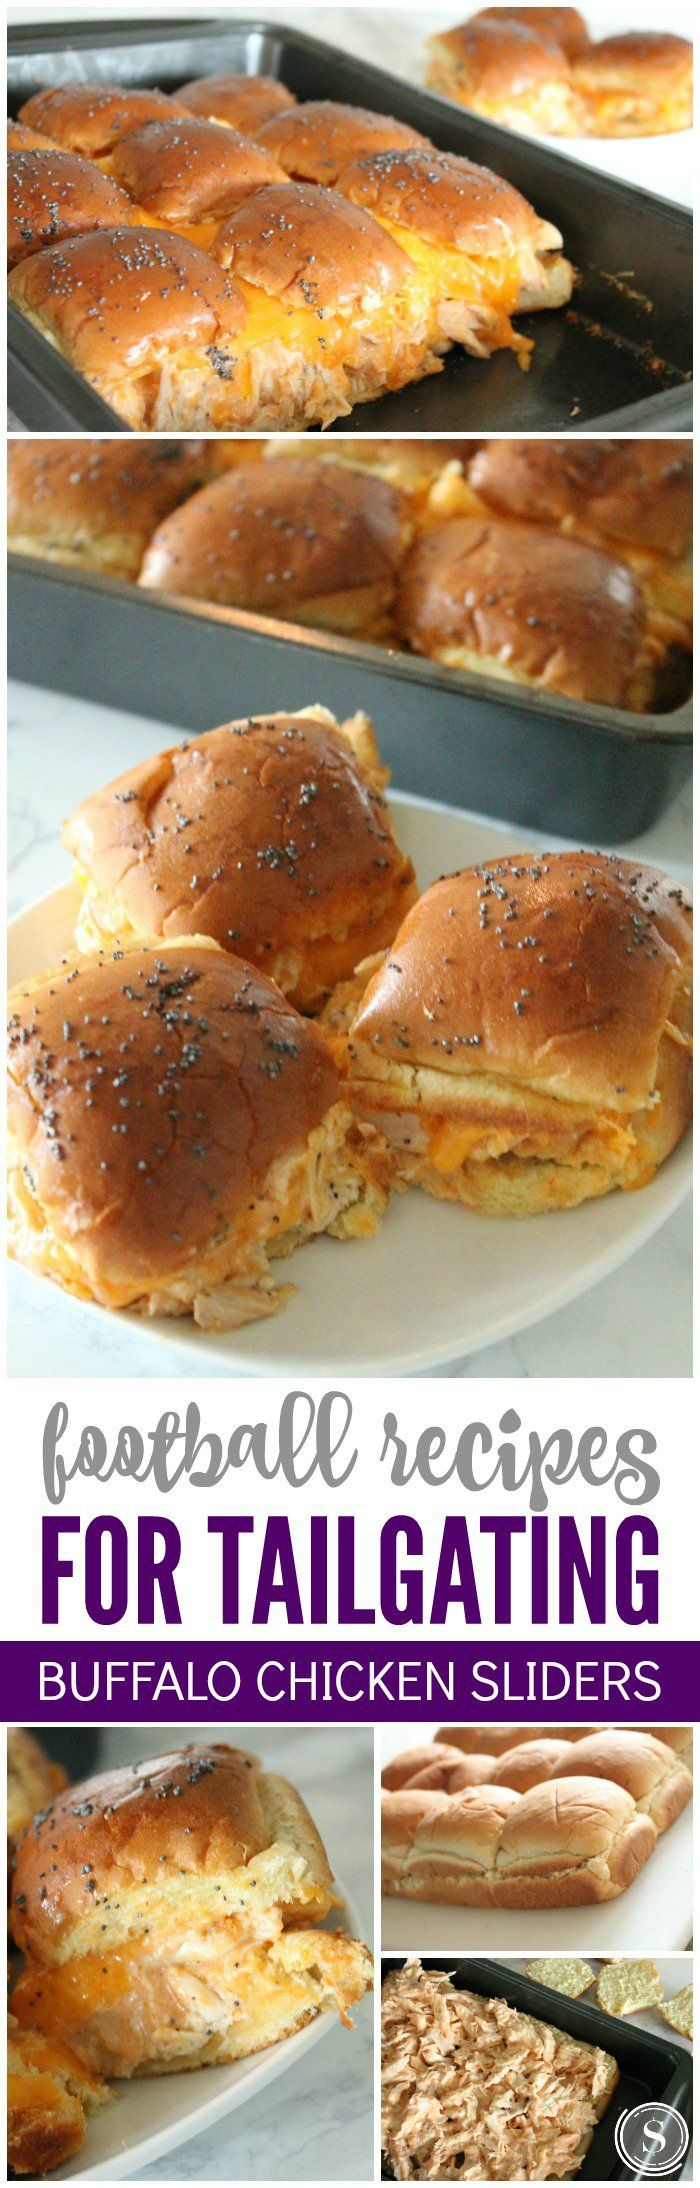 Football Recipes for Tailgating Buffalo Chicken Sliders